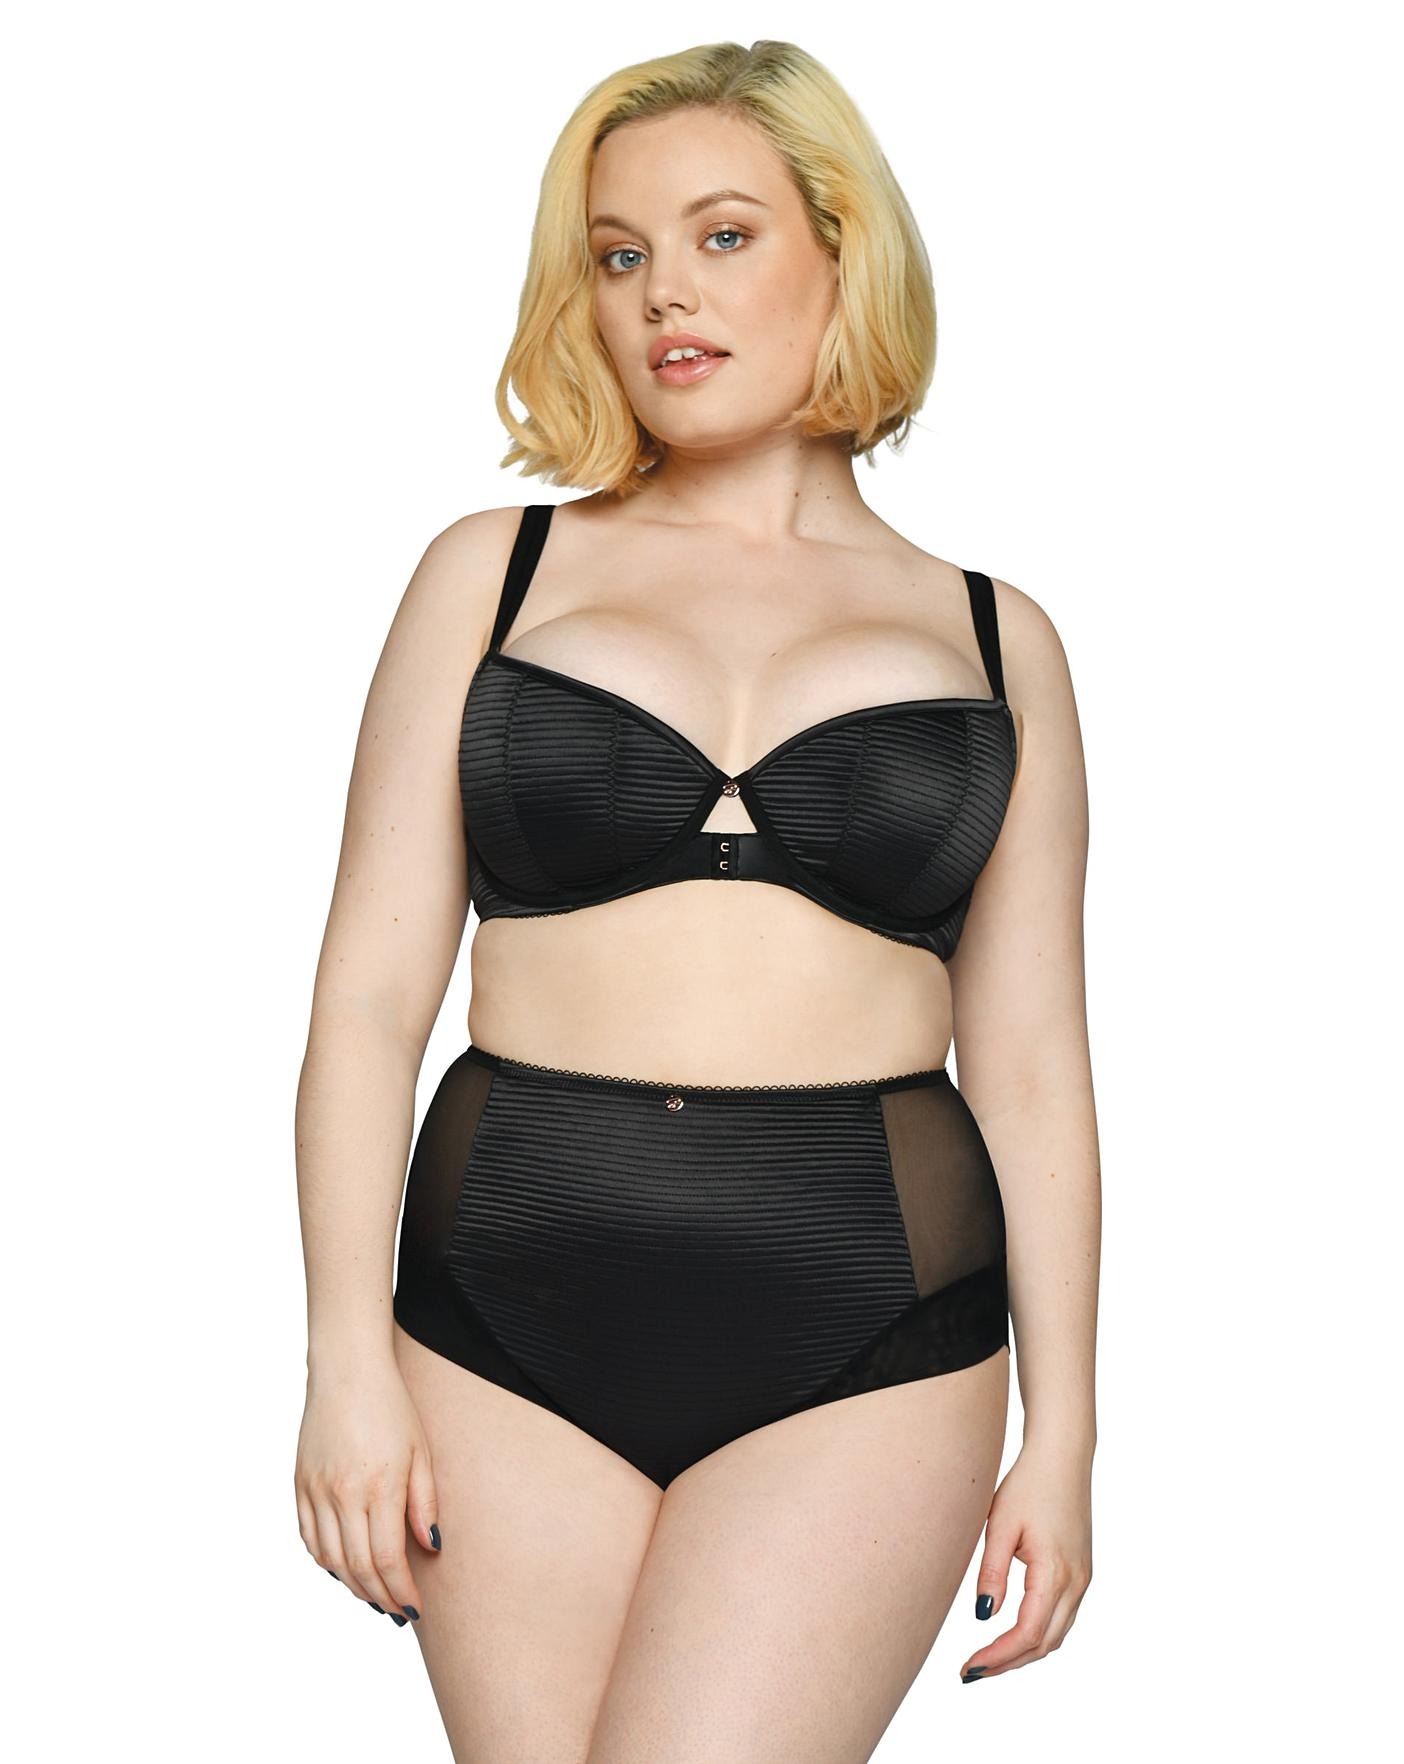 Scantilly by Curvy Kate Womens Brazen High Waist Brief size Small in Black